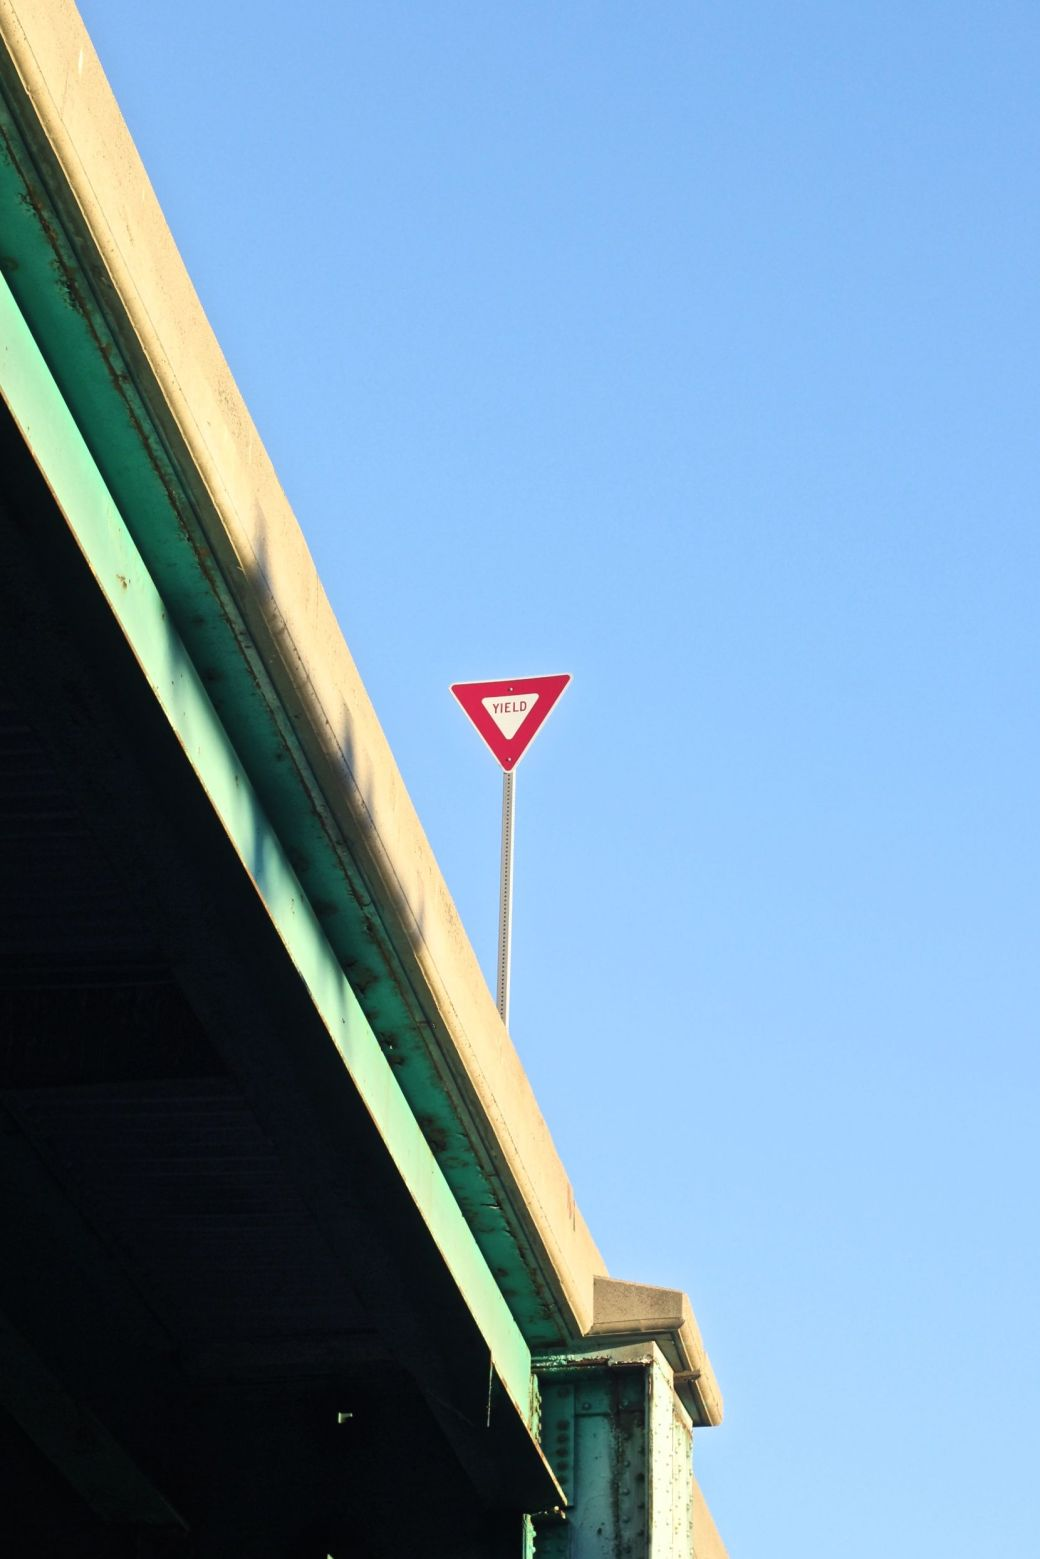 boston dorchester yield sign